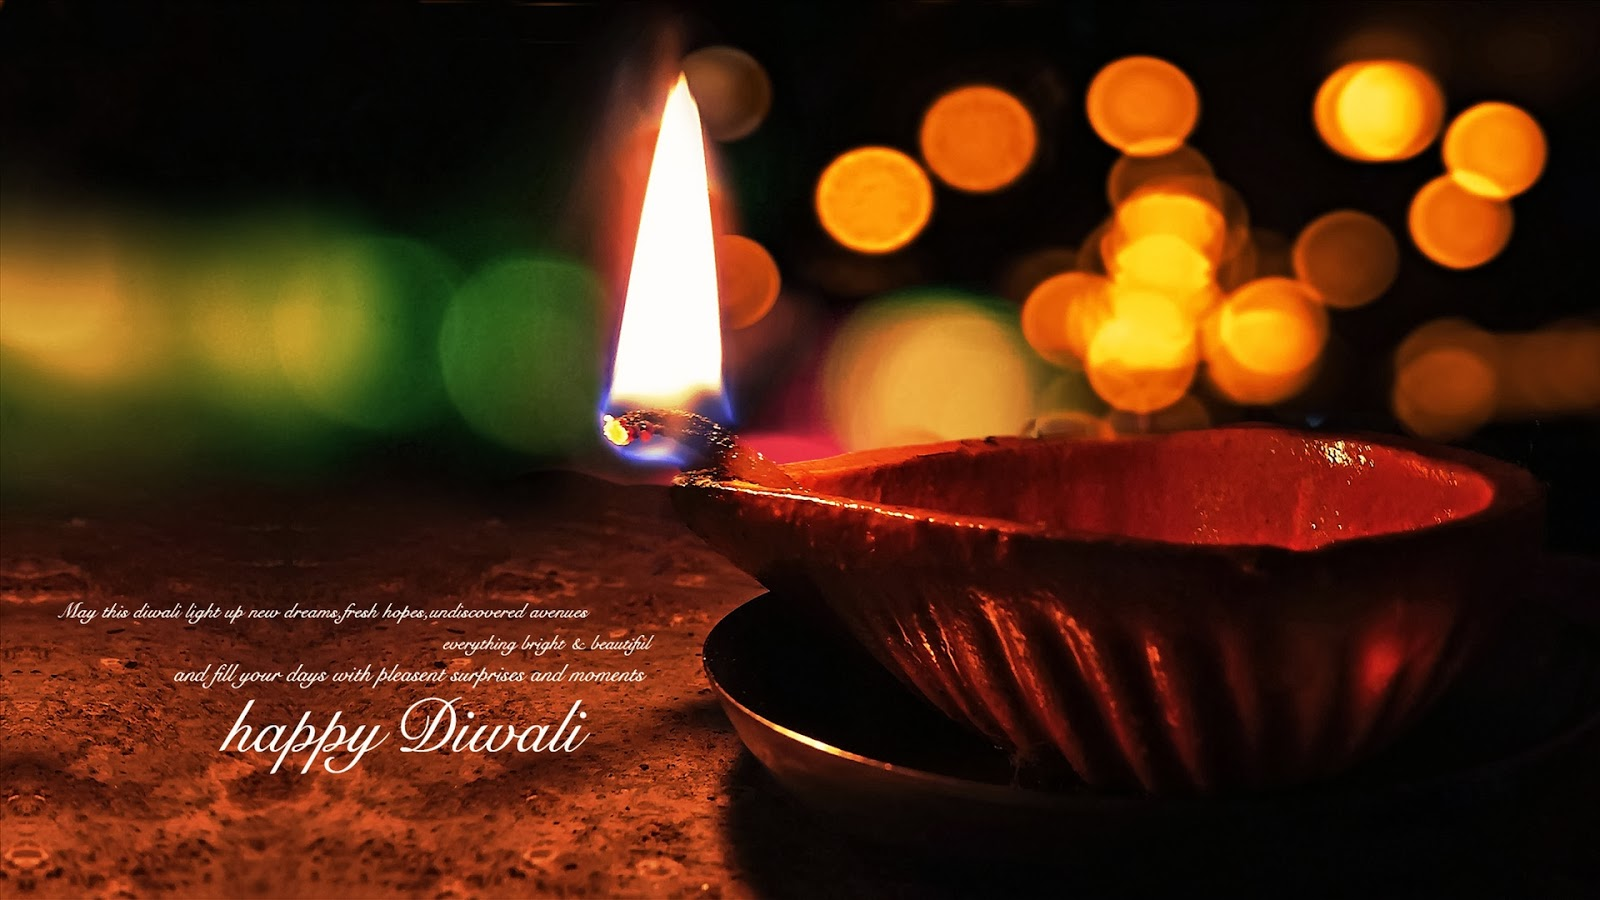 essay on diwali festival essay on diwali festival of lights diwali  simple essay diwali festival research paper writing service simple essay diwali festival